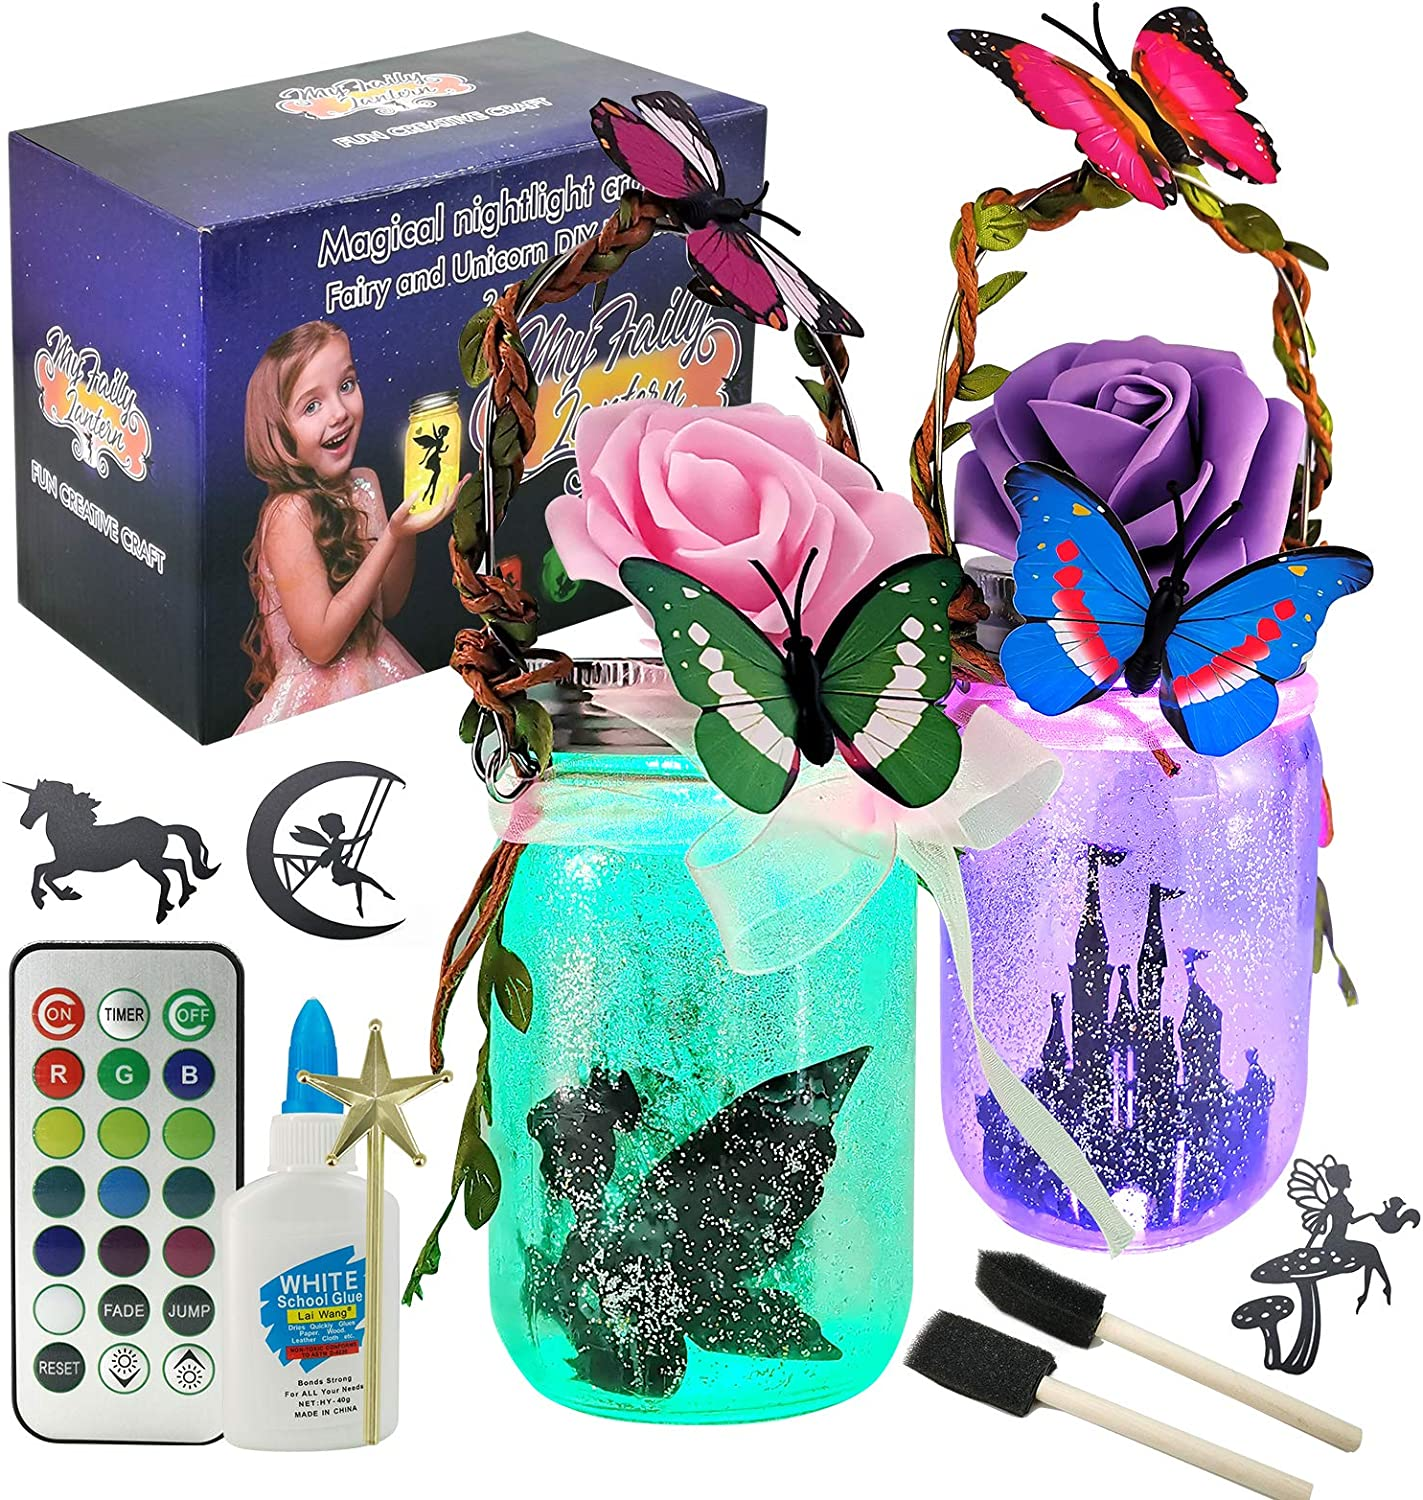 Fairy Lantern Craft Kit for Kids - DIY Make Your Own Fairy Lantern Jarfor Girls Age 6 7 8 9 10 Year Old, Dream LED Light 8 Colors Adjustable Yard, and Garden Decor Art Project